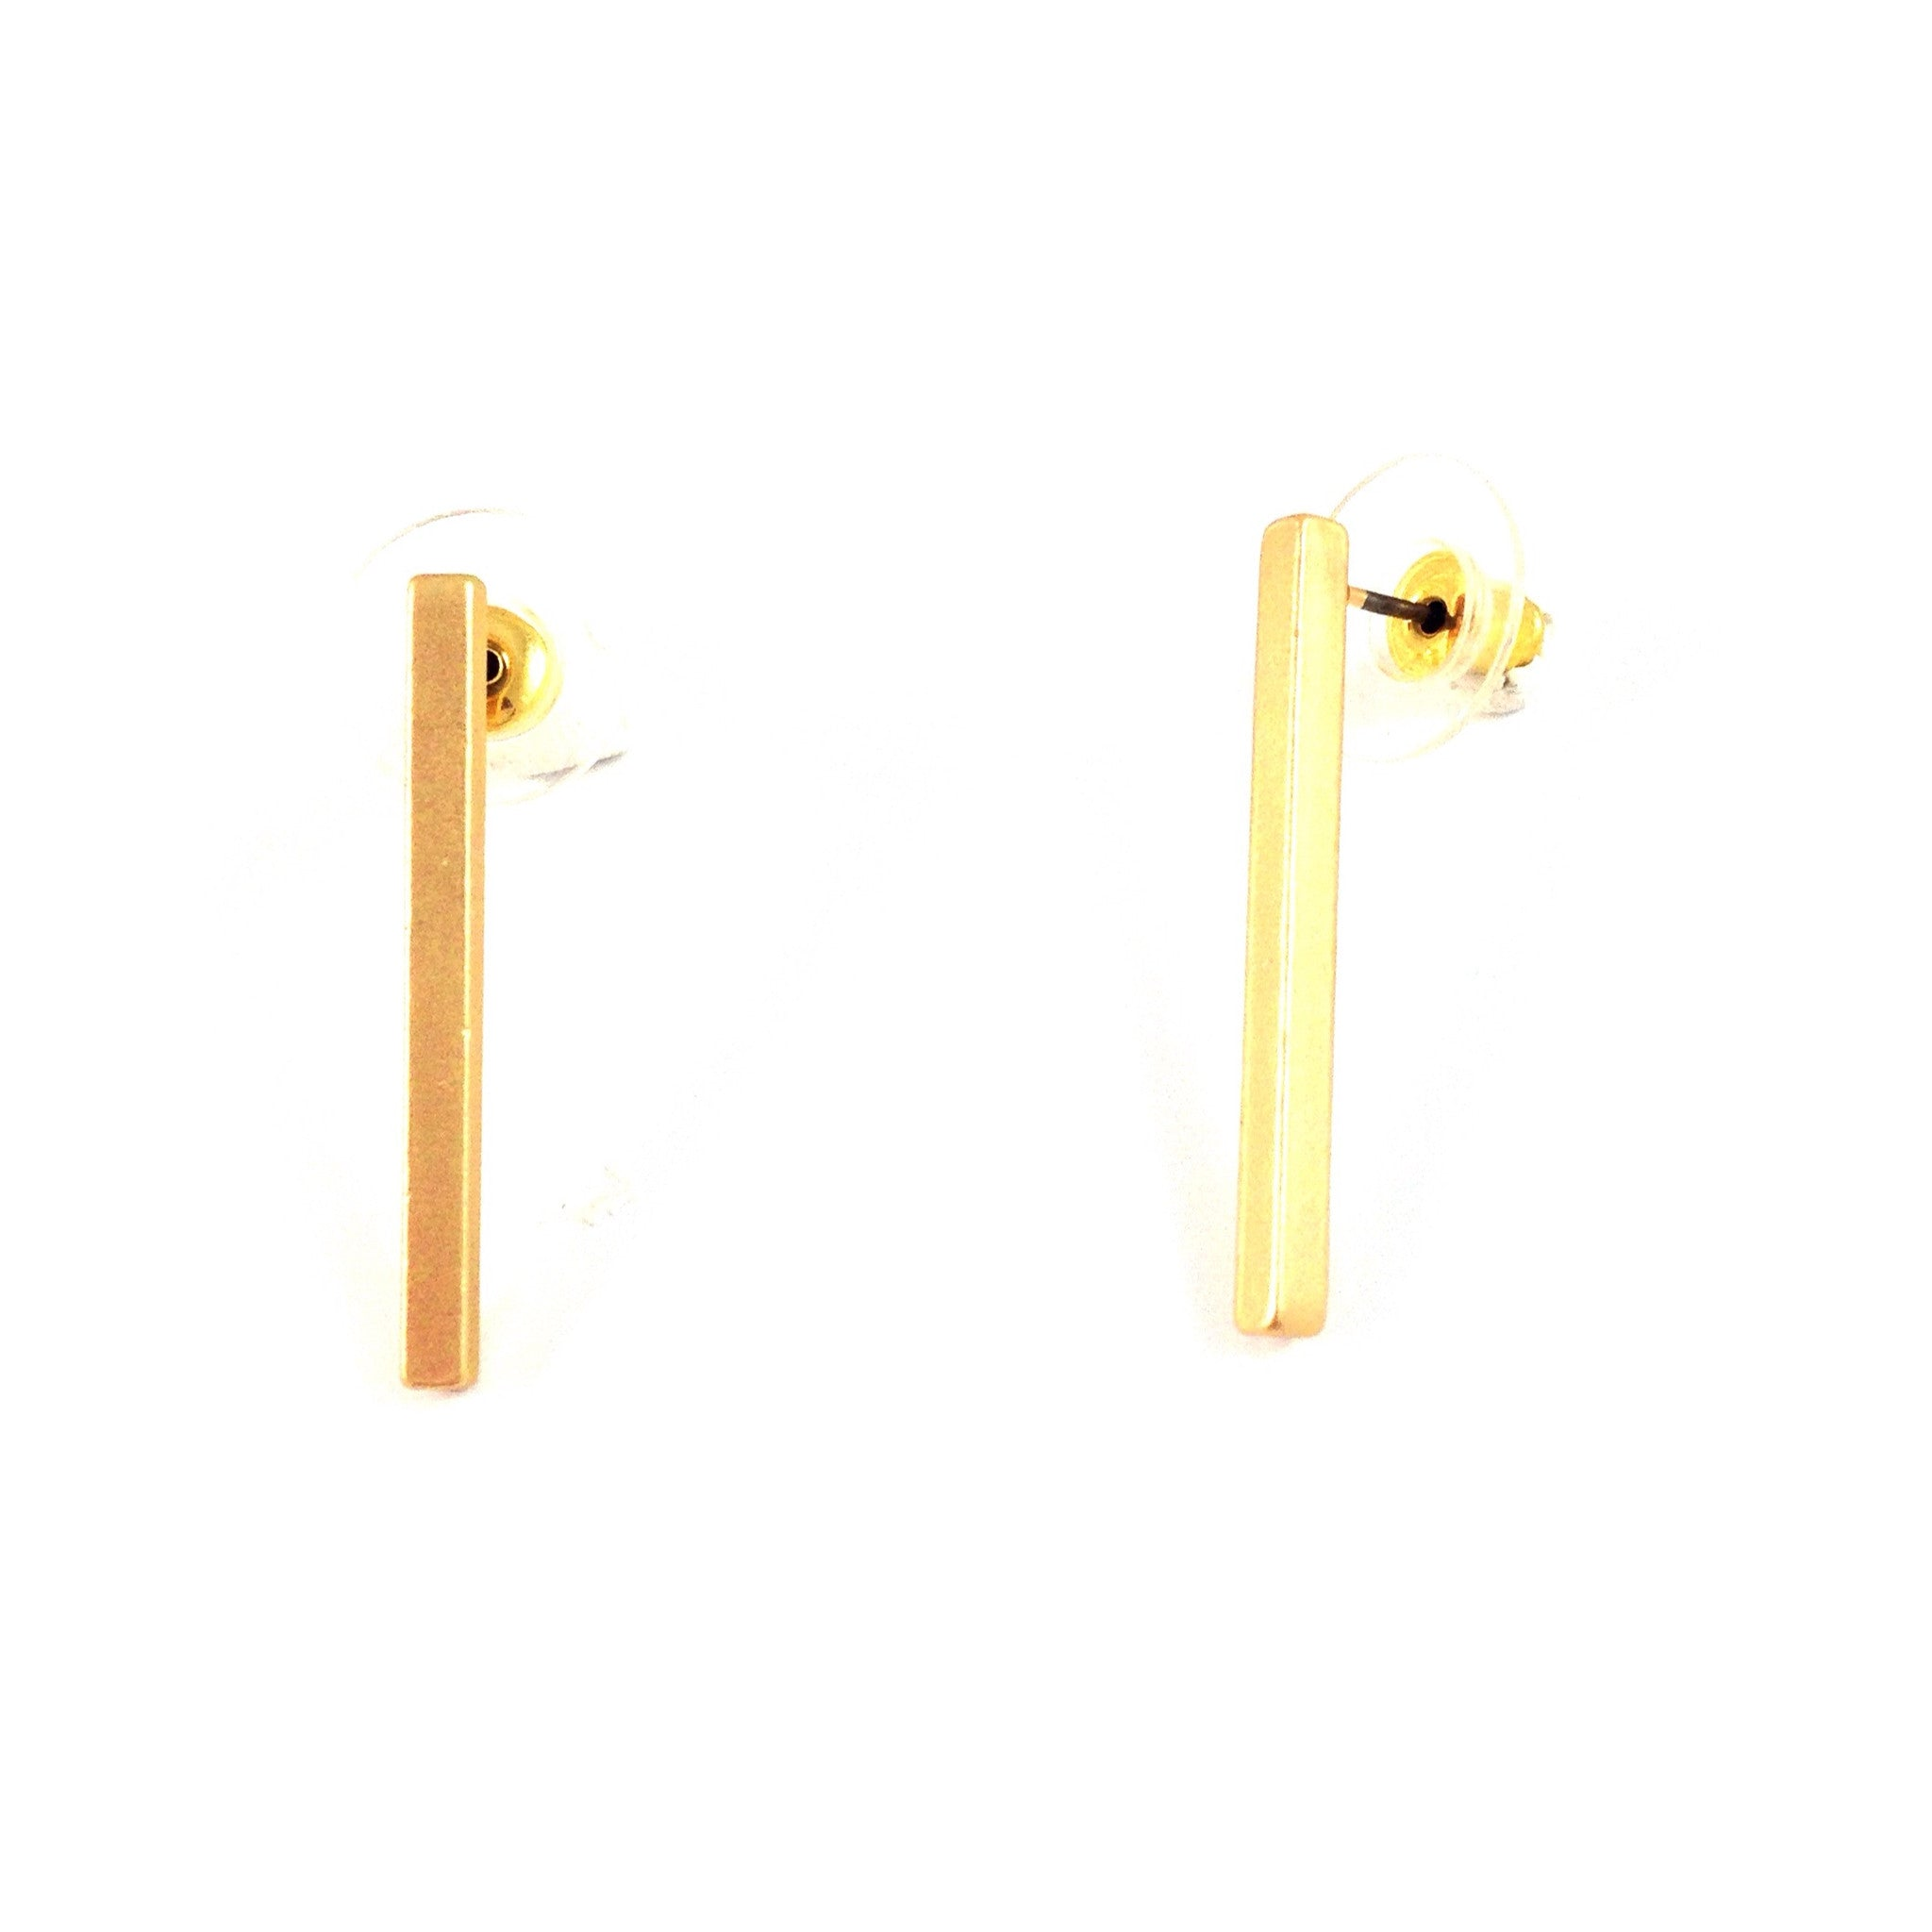 Square Bar Casting Posts $7 | Fashion Gold Stud Earrings | Light Years Jewelry